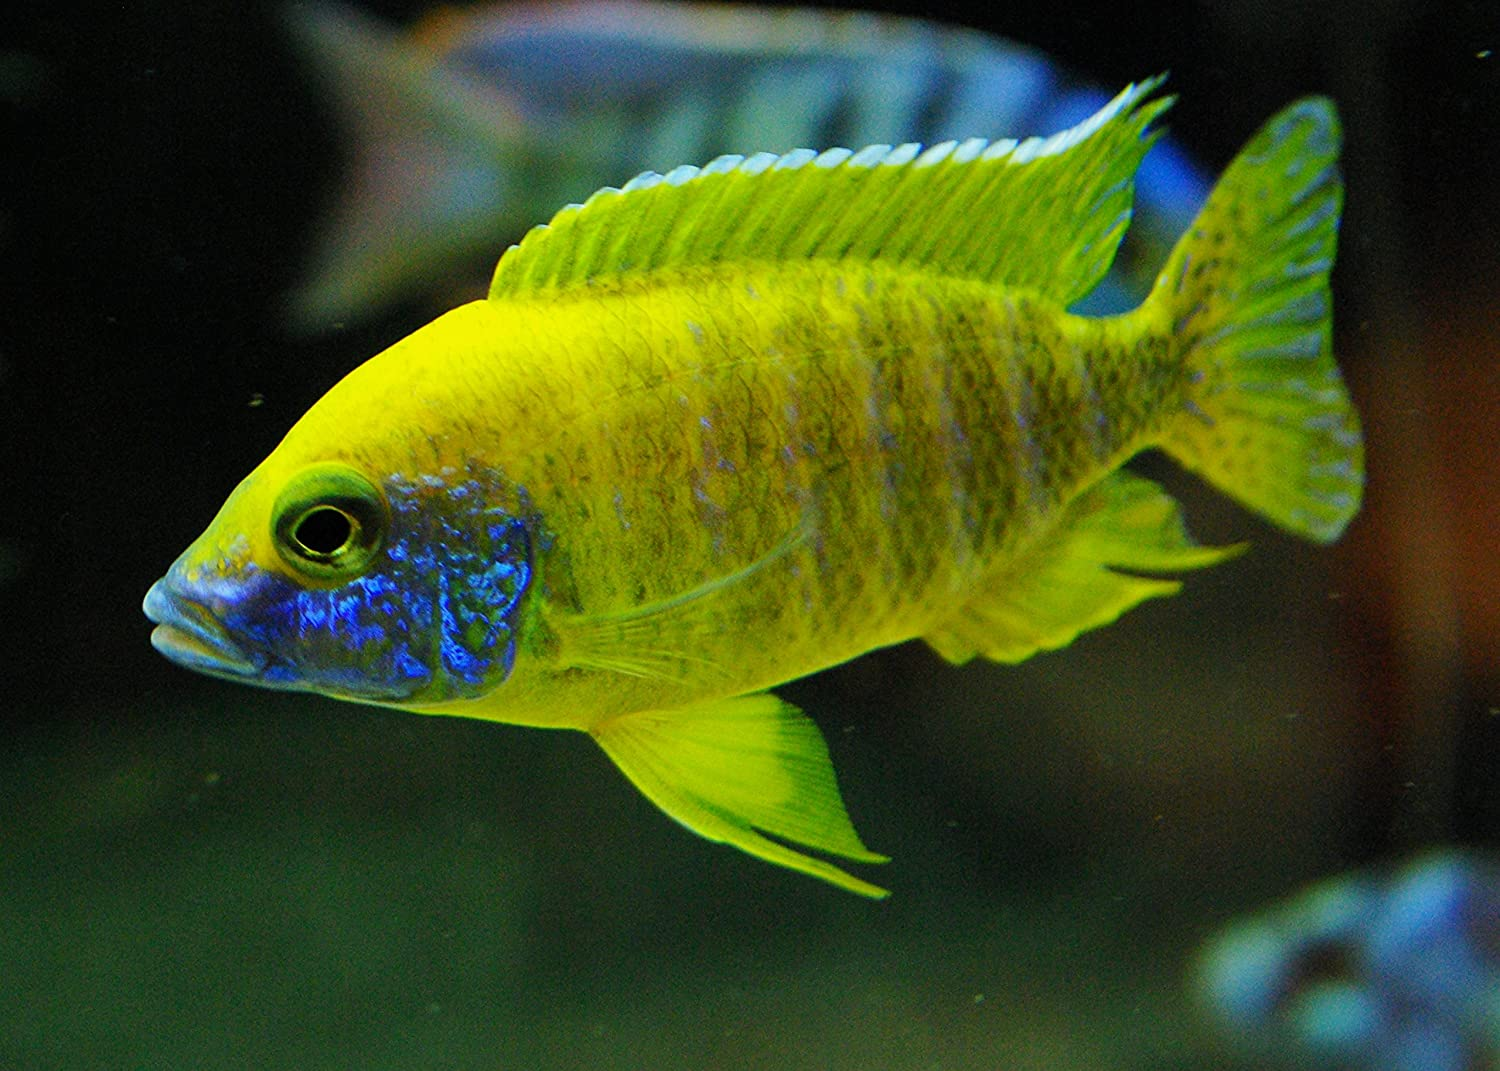 Live Freshwater Aquarium Fish  3  4  Lemon Jake Peacock  34  Sunshine Peacock  by WorldwideTropicals  Live Freshwater Fish  Live Tropical Fish  Great For Aquariums  Populate Your Fish Tank